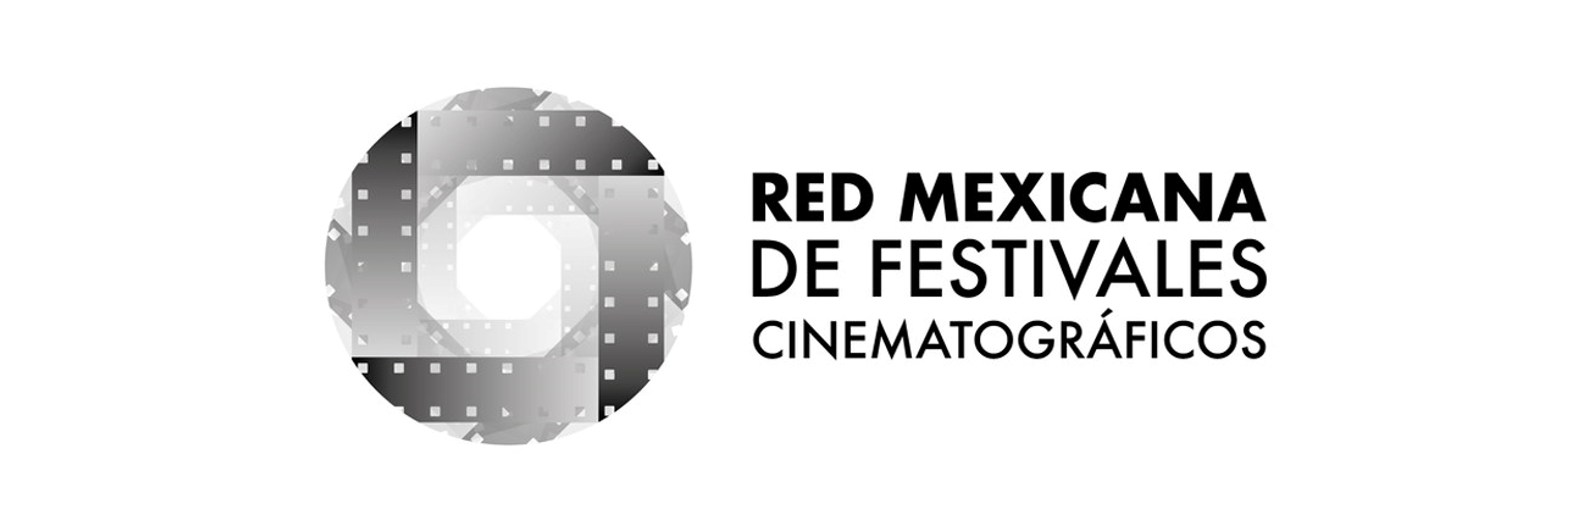 Red de Festivales Cinematográficos